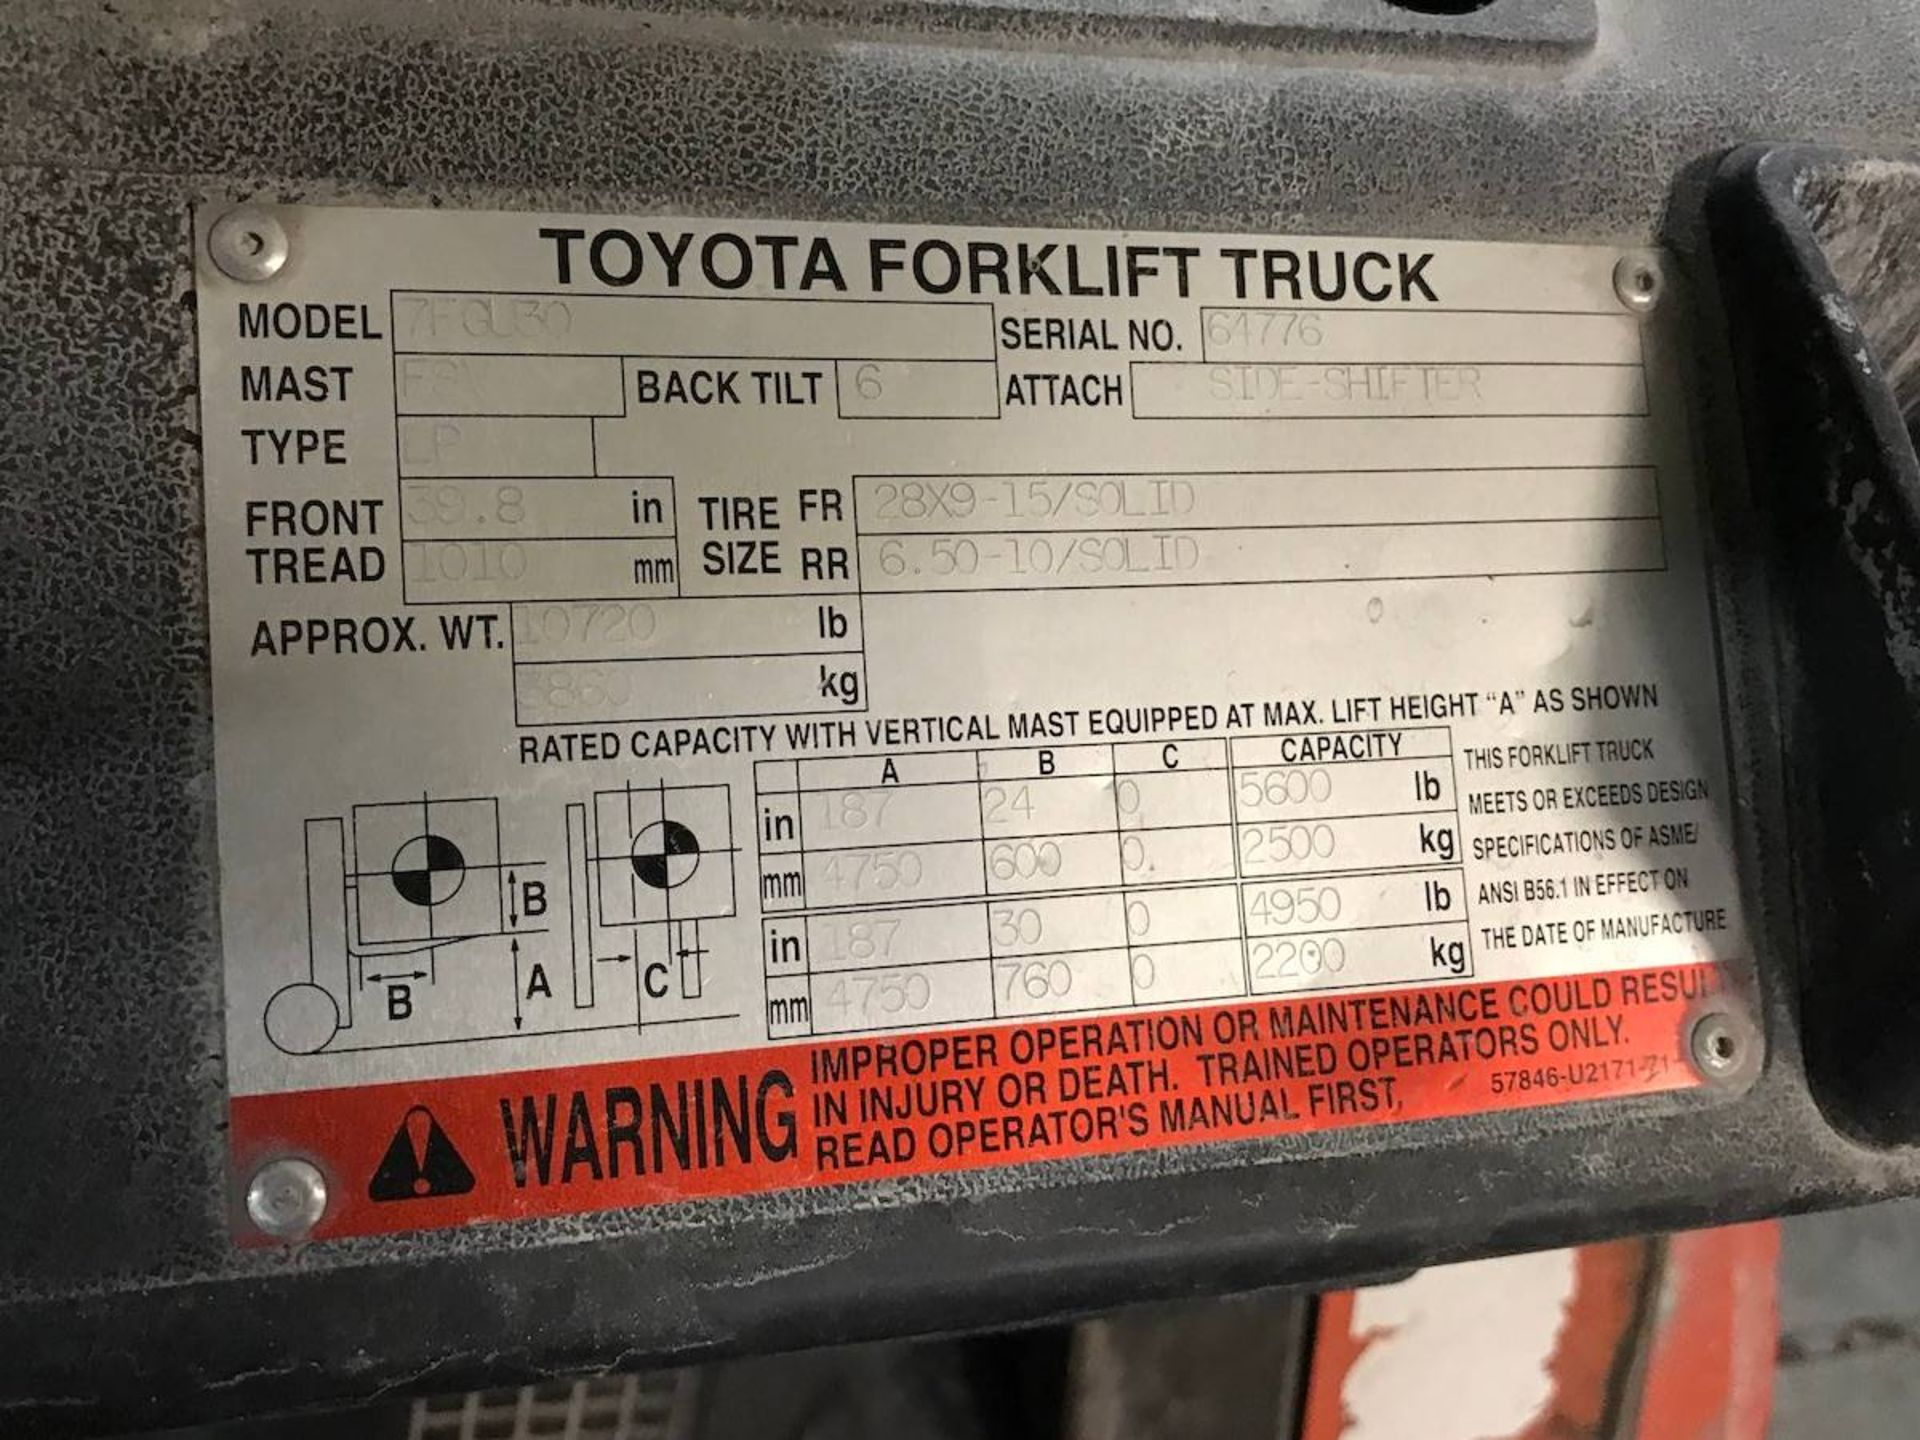 Toyota 7FGU30 Forklift Truck - Image 6 of 6